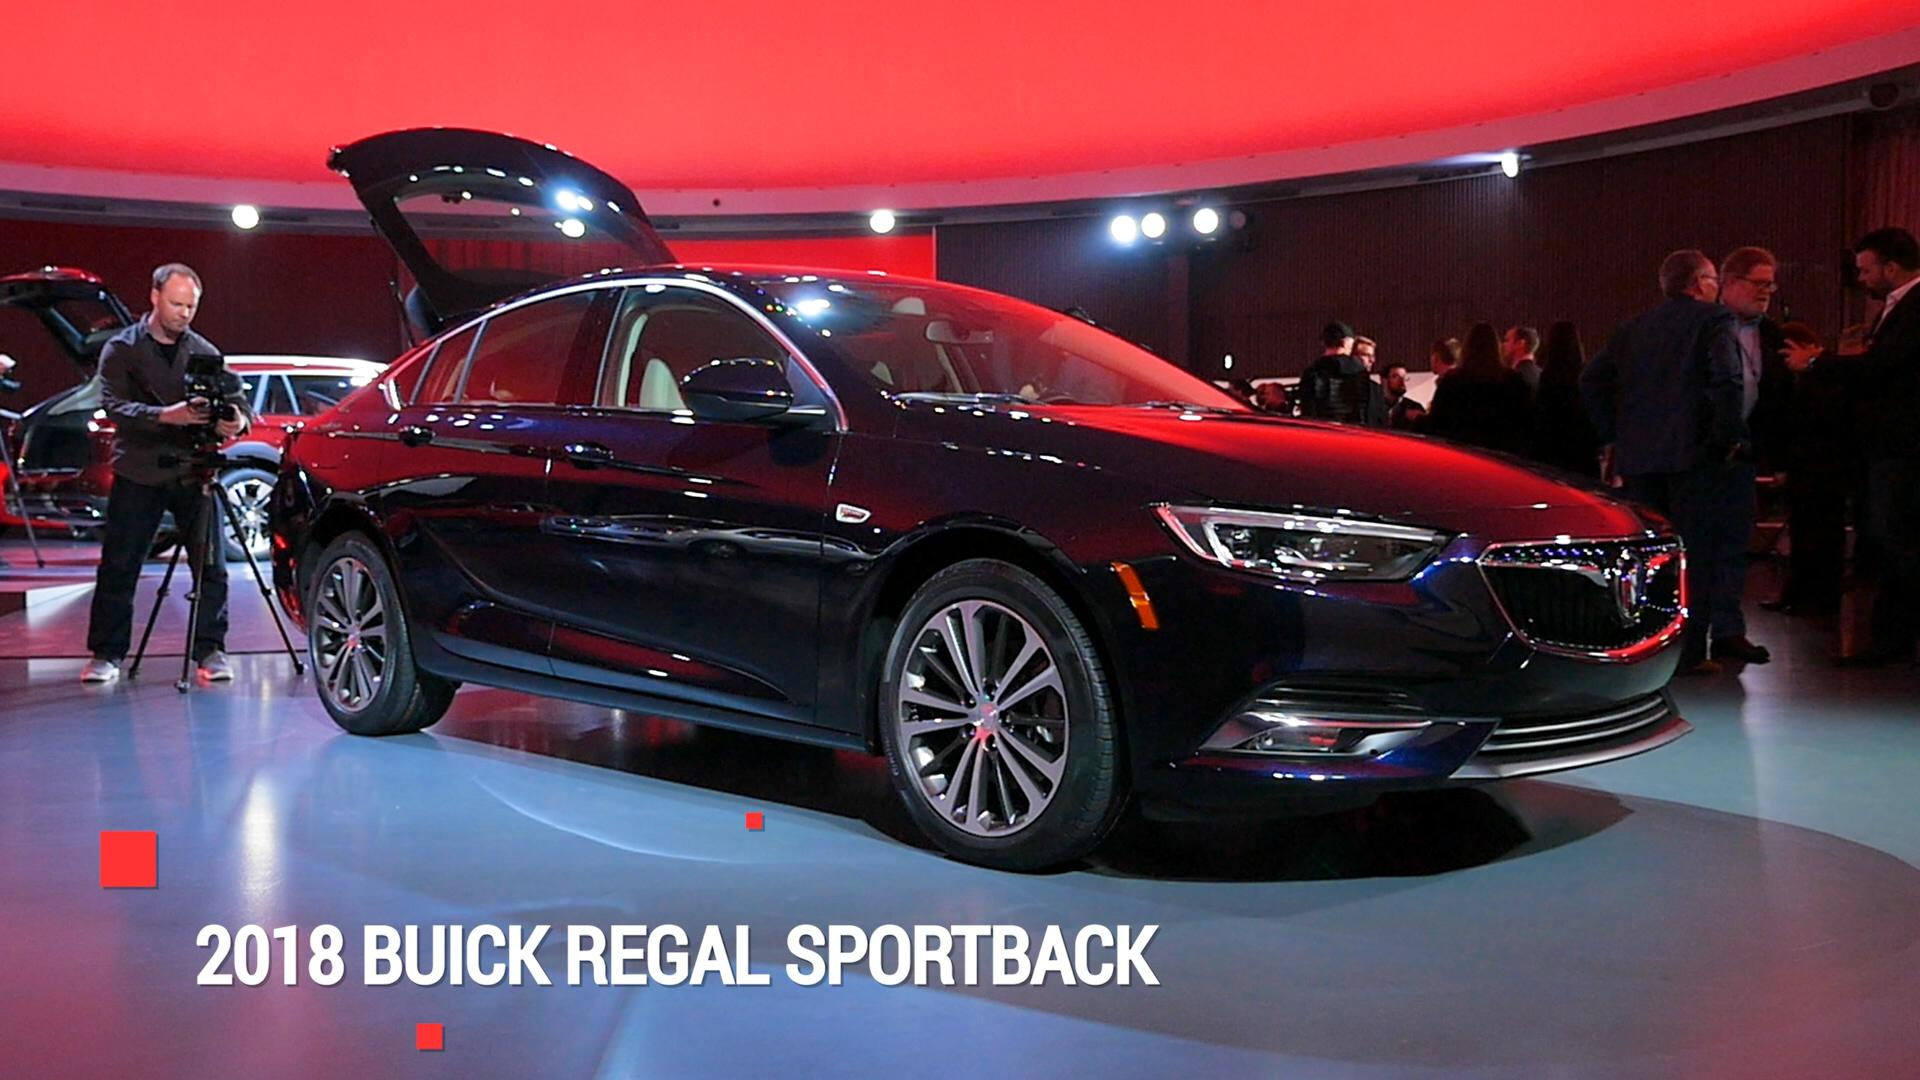 wallpaper envision buick new information pictures the specs